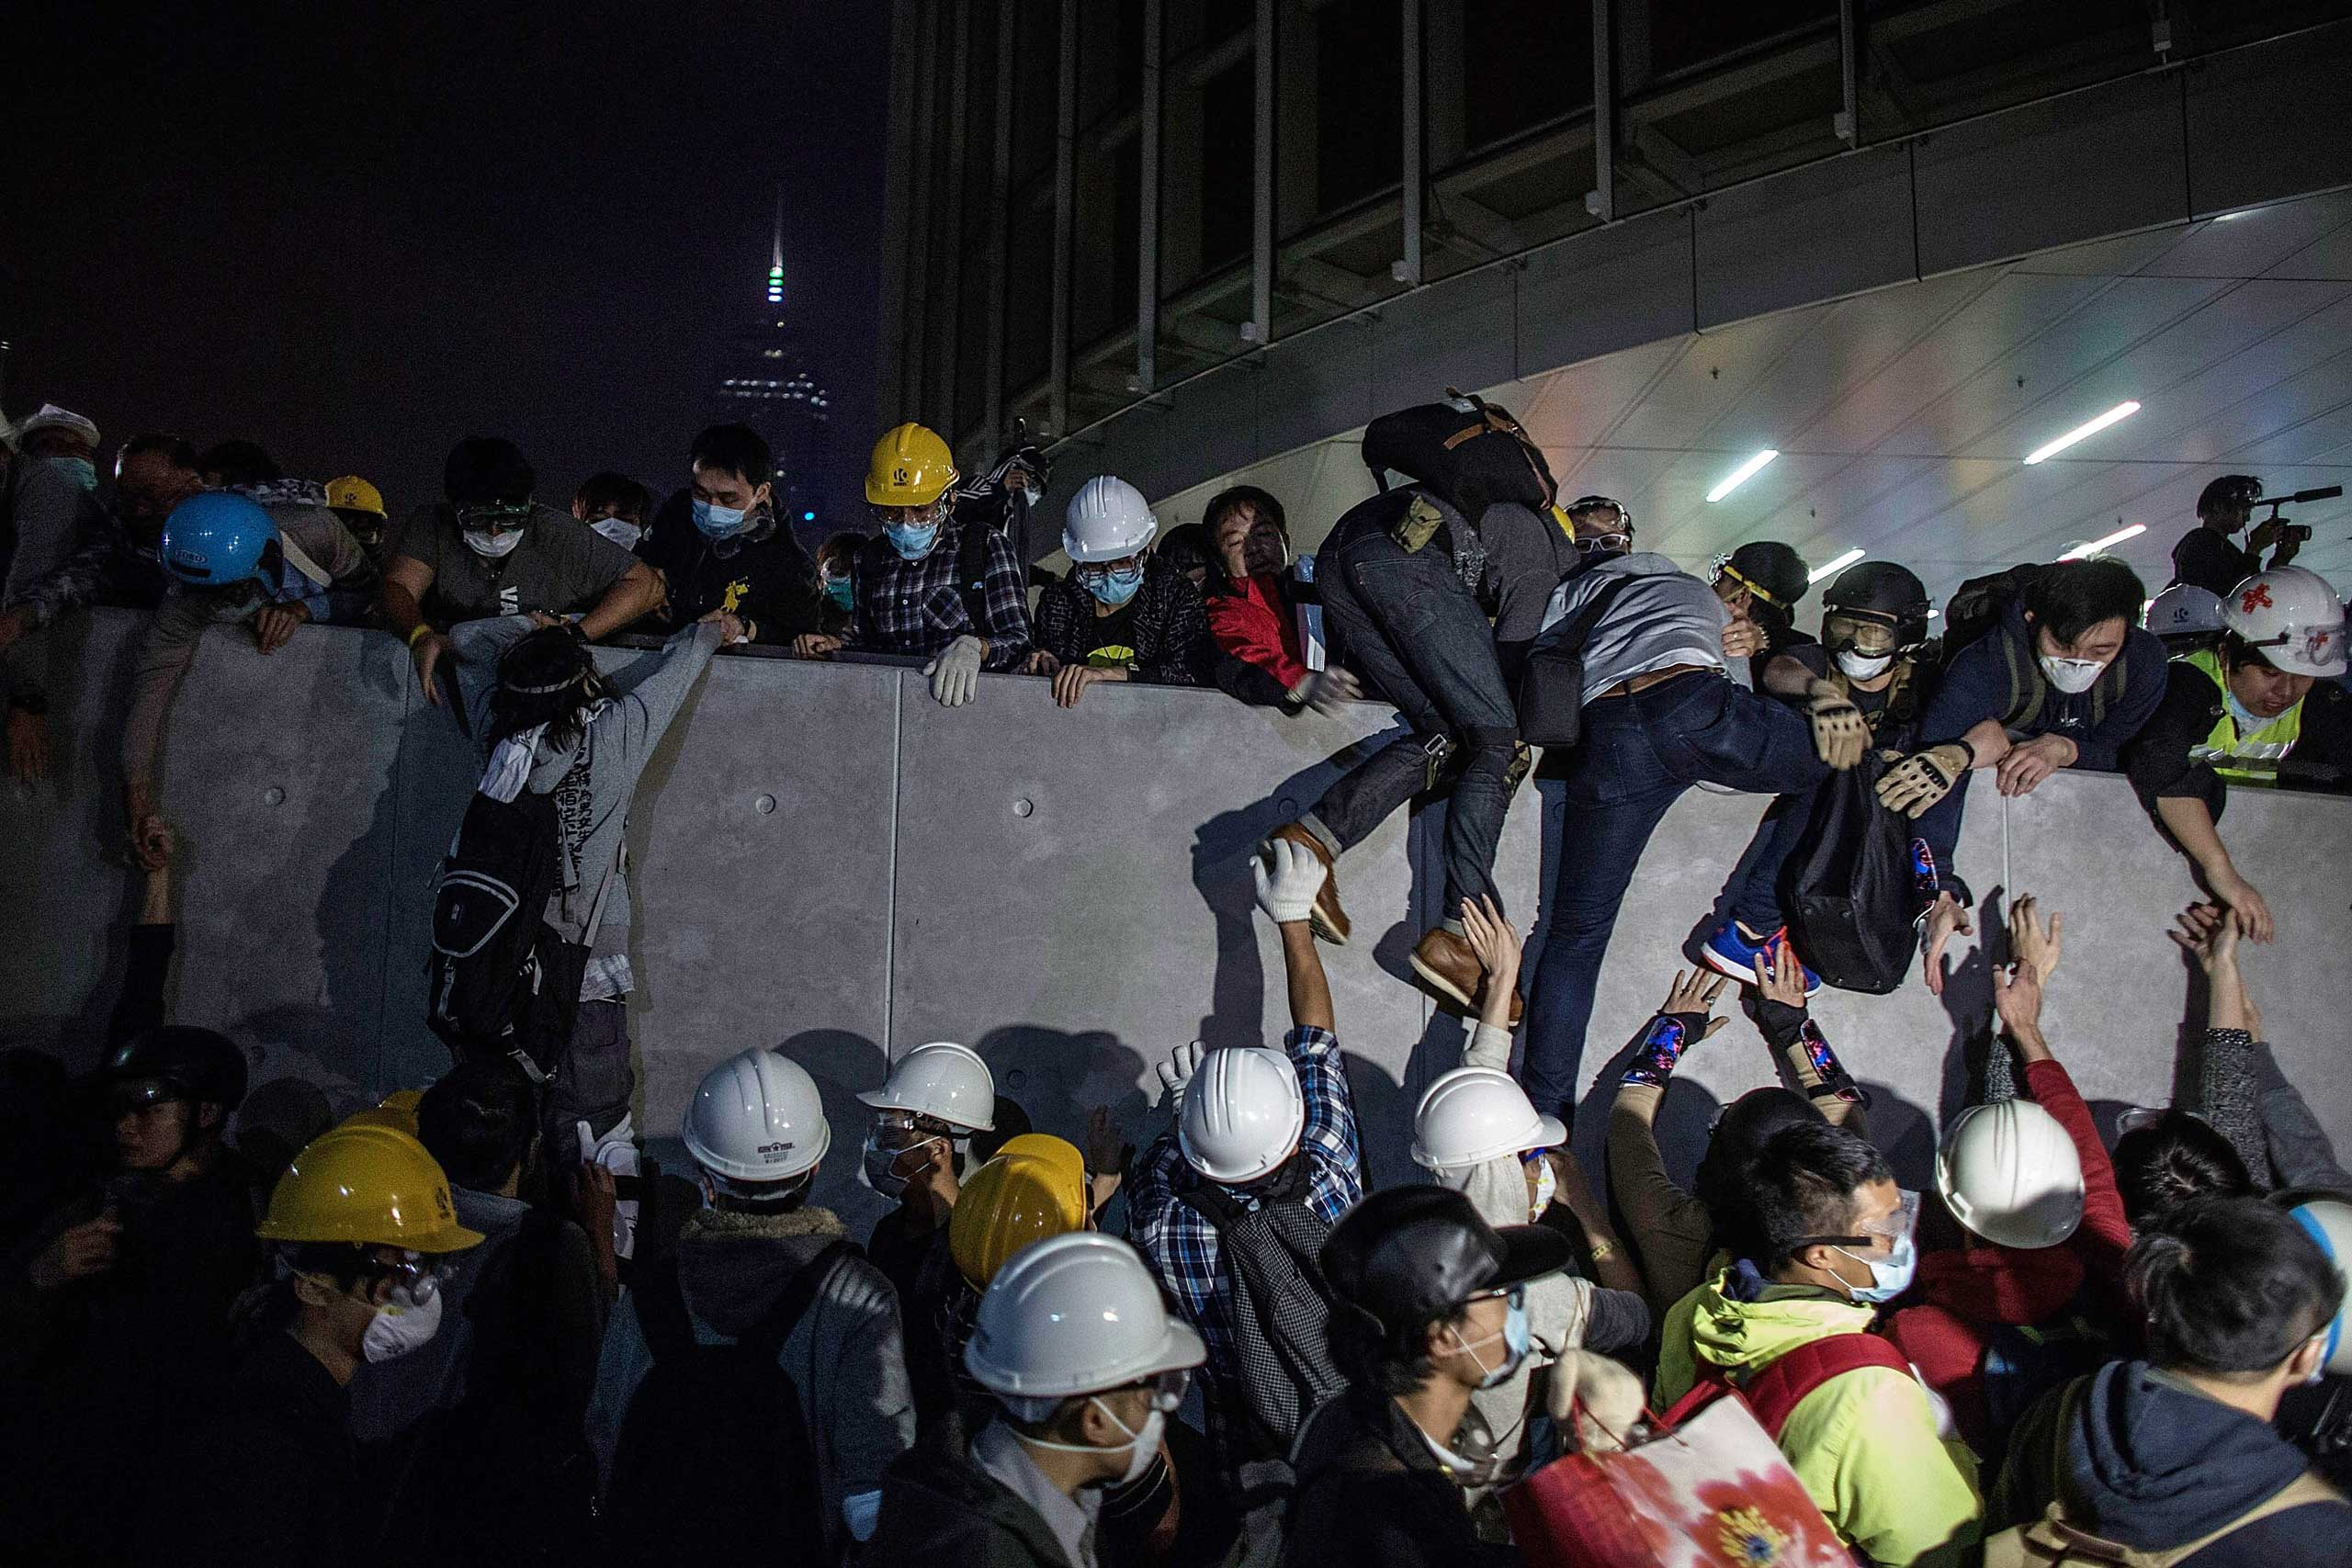 Pro-democracy protesters climb up a wall as police officers disperse them outside the Legislative Council building after clashes with pro-democracy activists on Nov. 19, 2014 in Hong Kong.